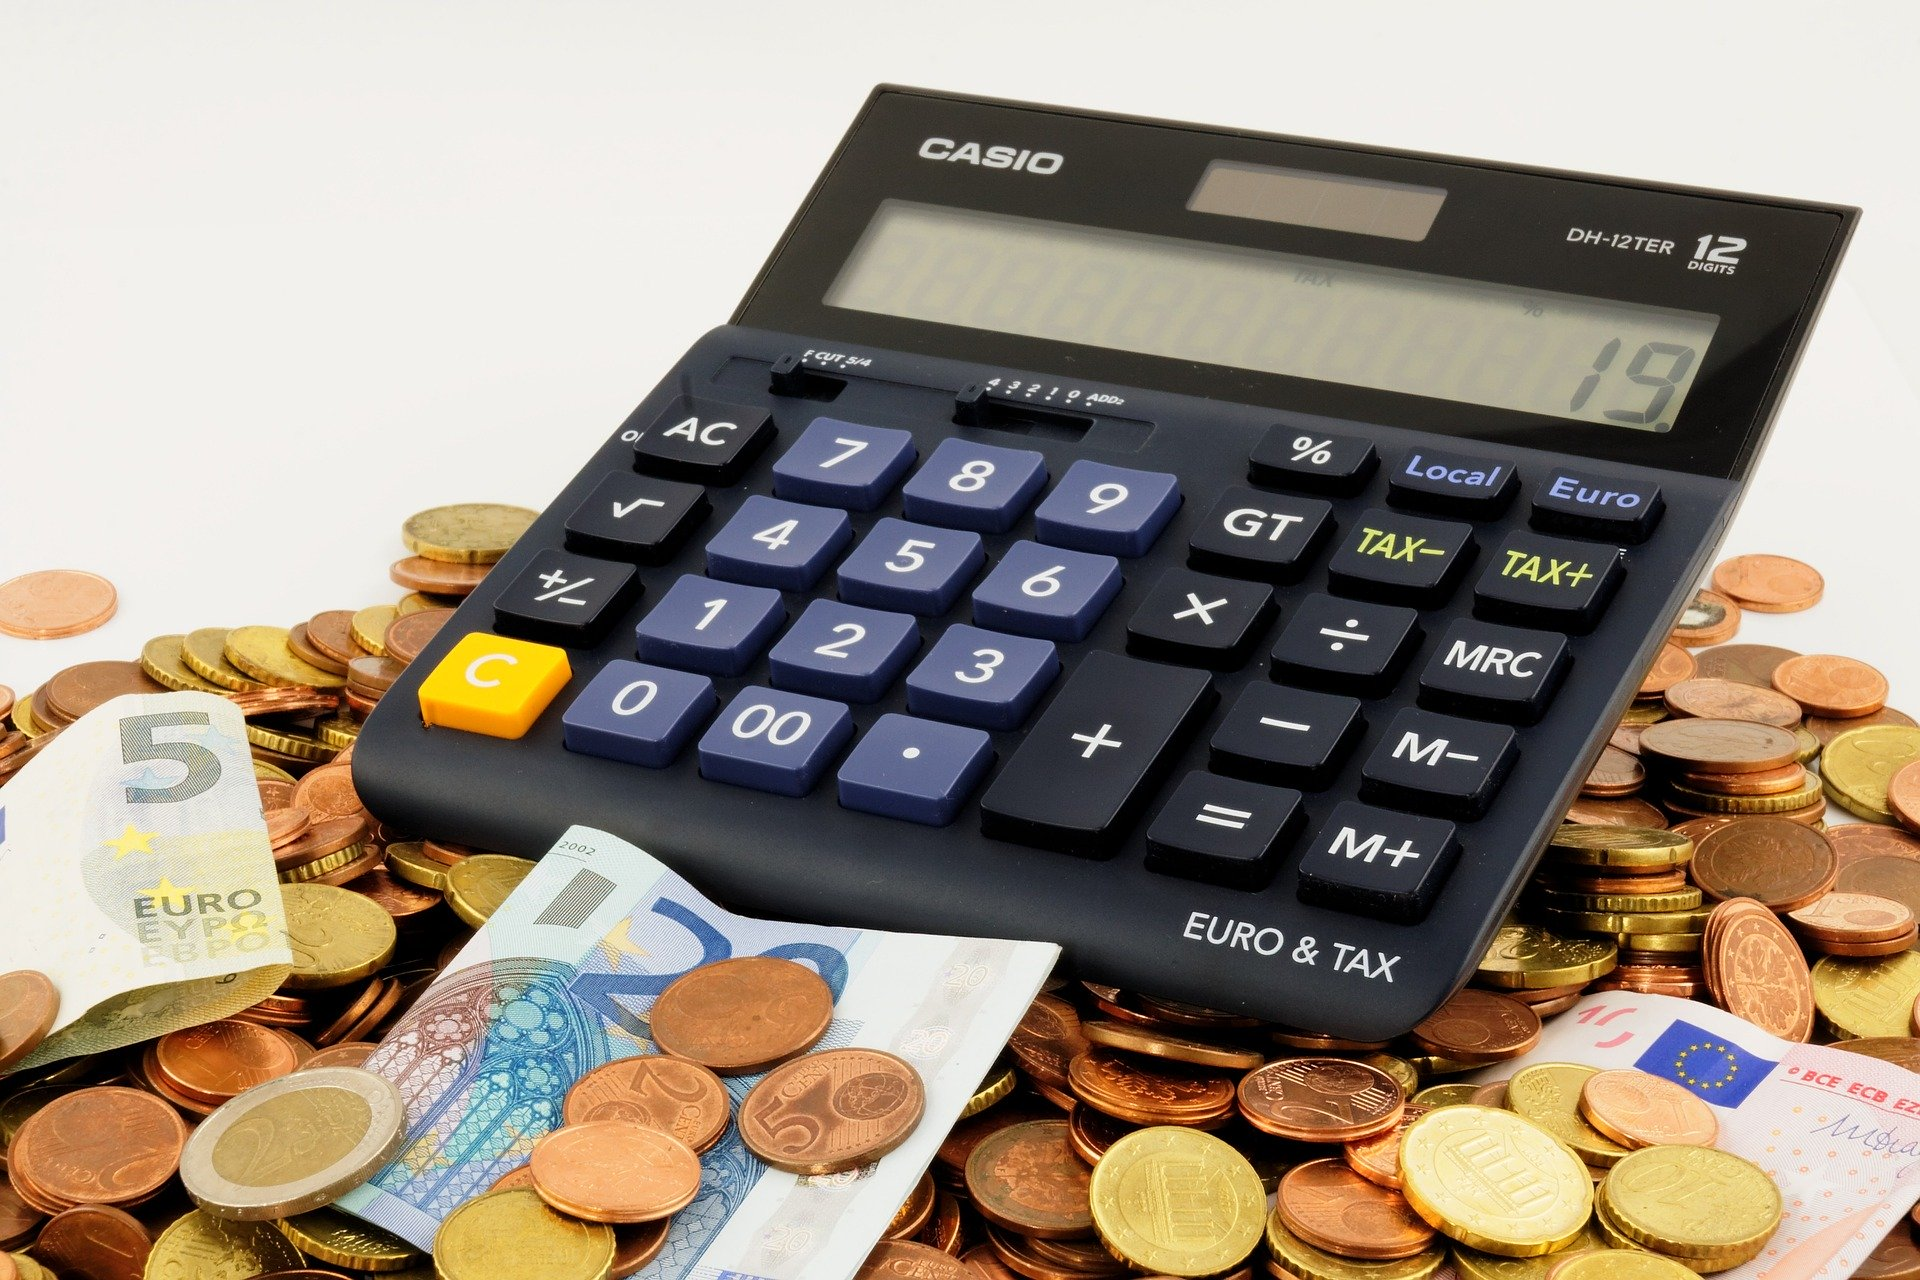 Calculator, cash and coins